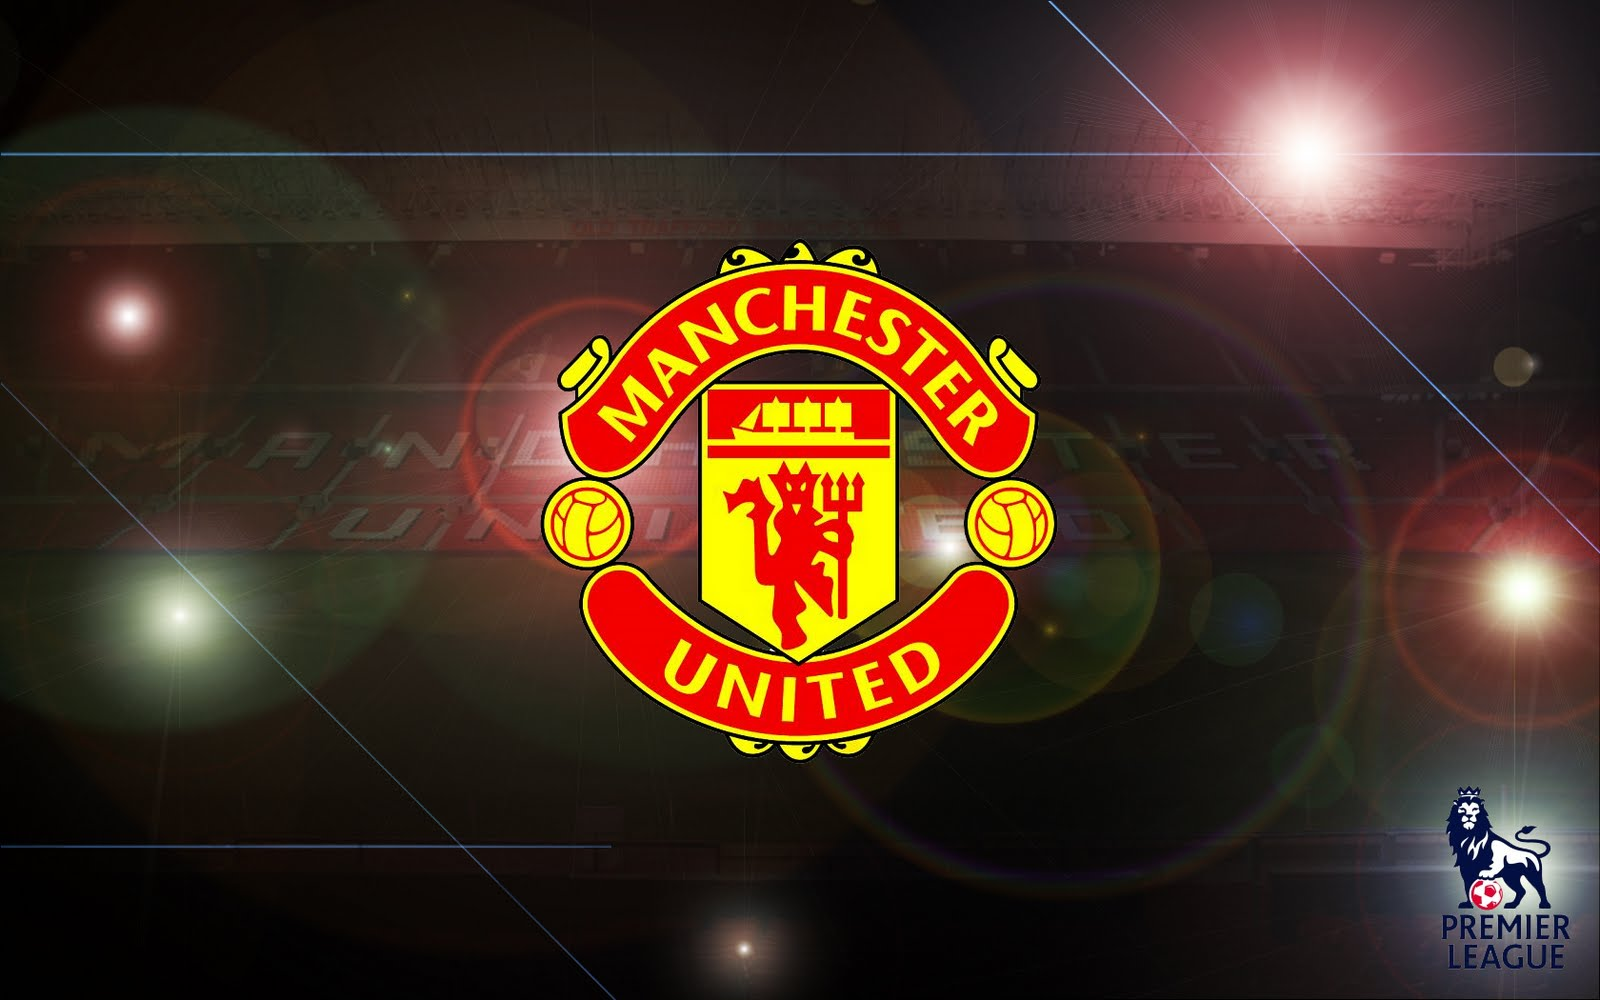 77 ] Manchester United Wallpaper On WallpaperSafari